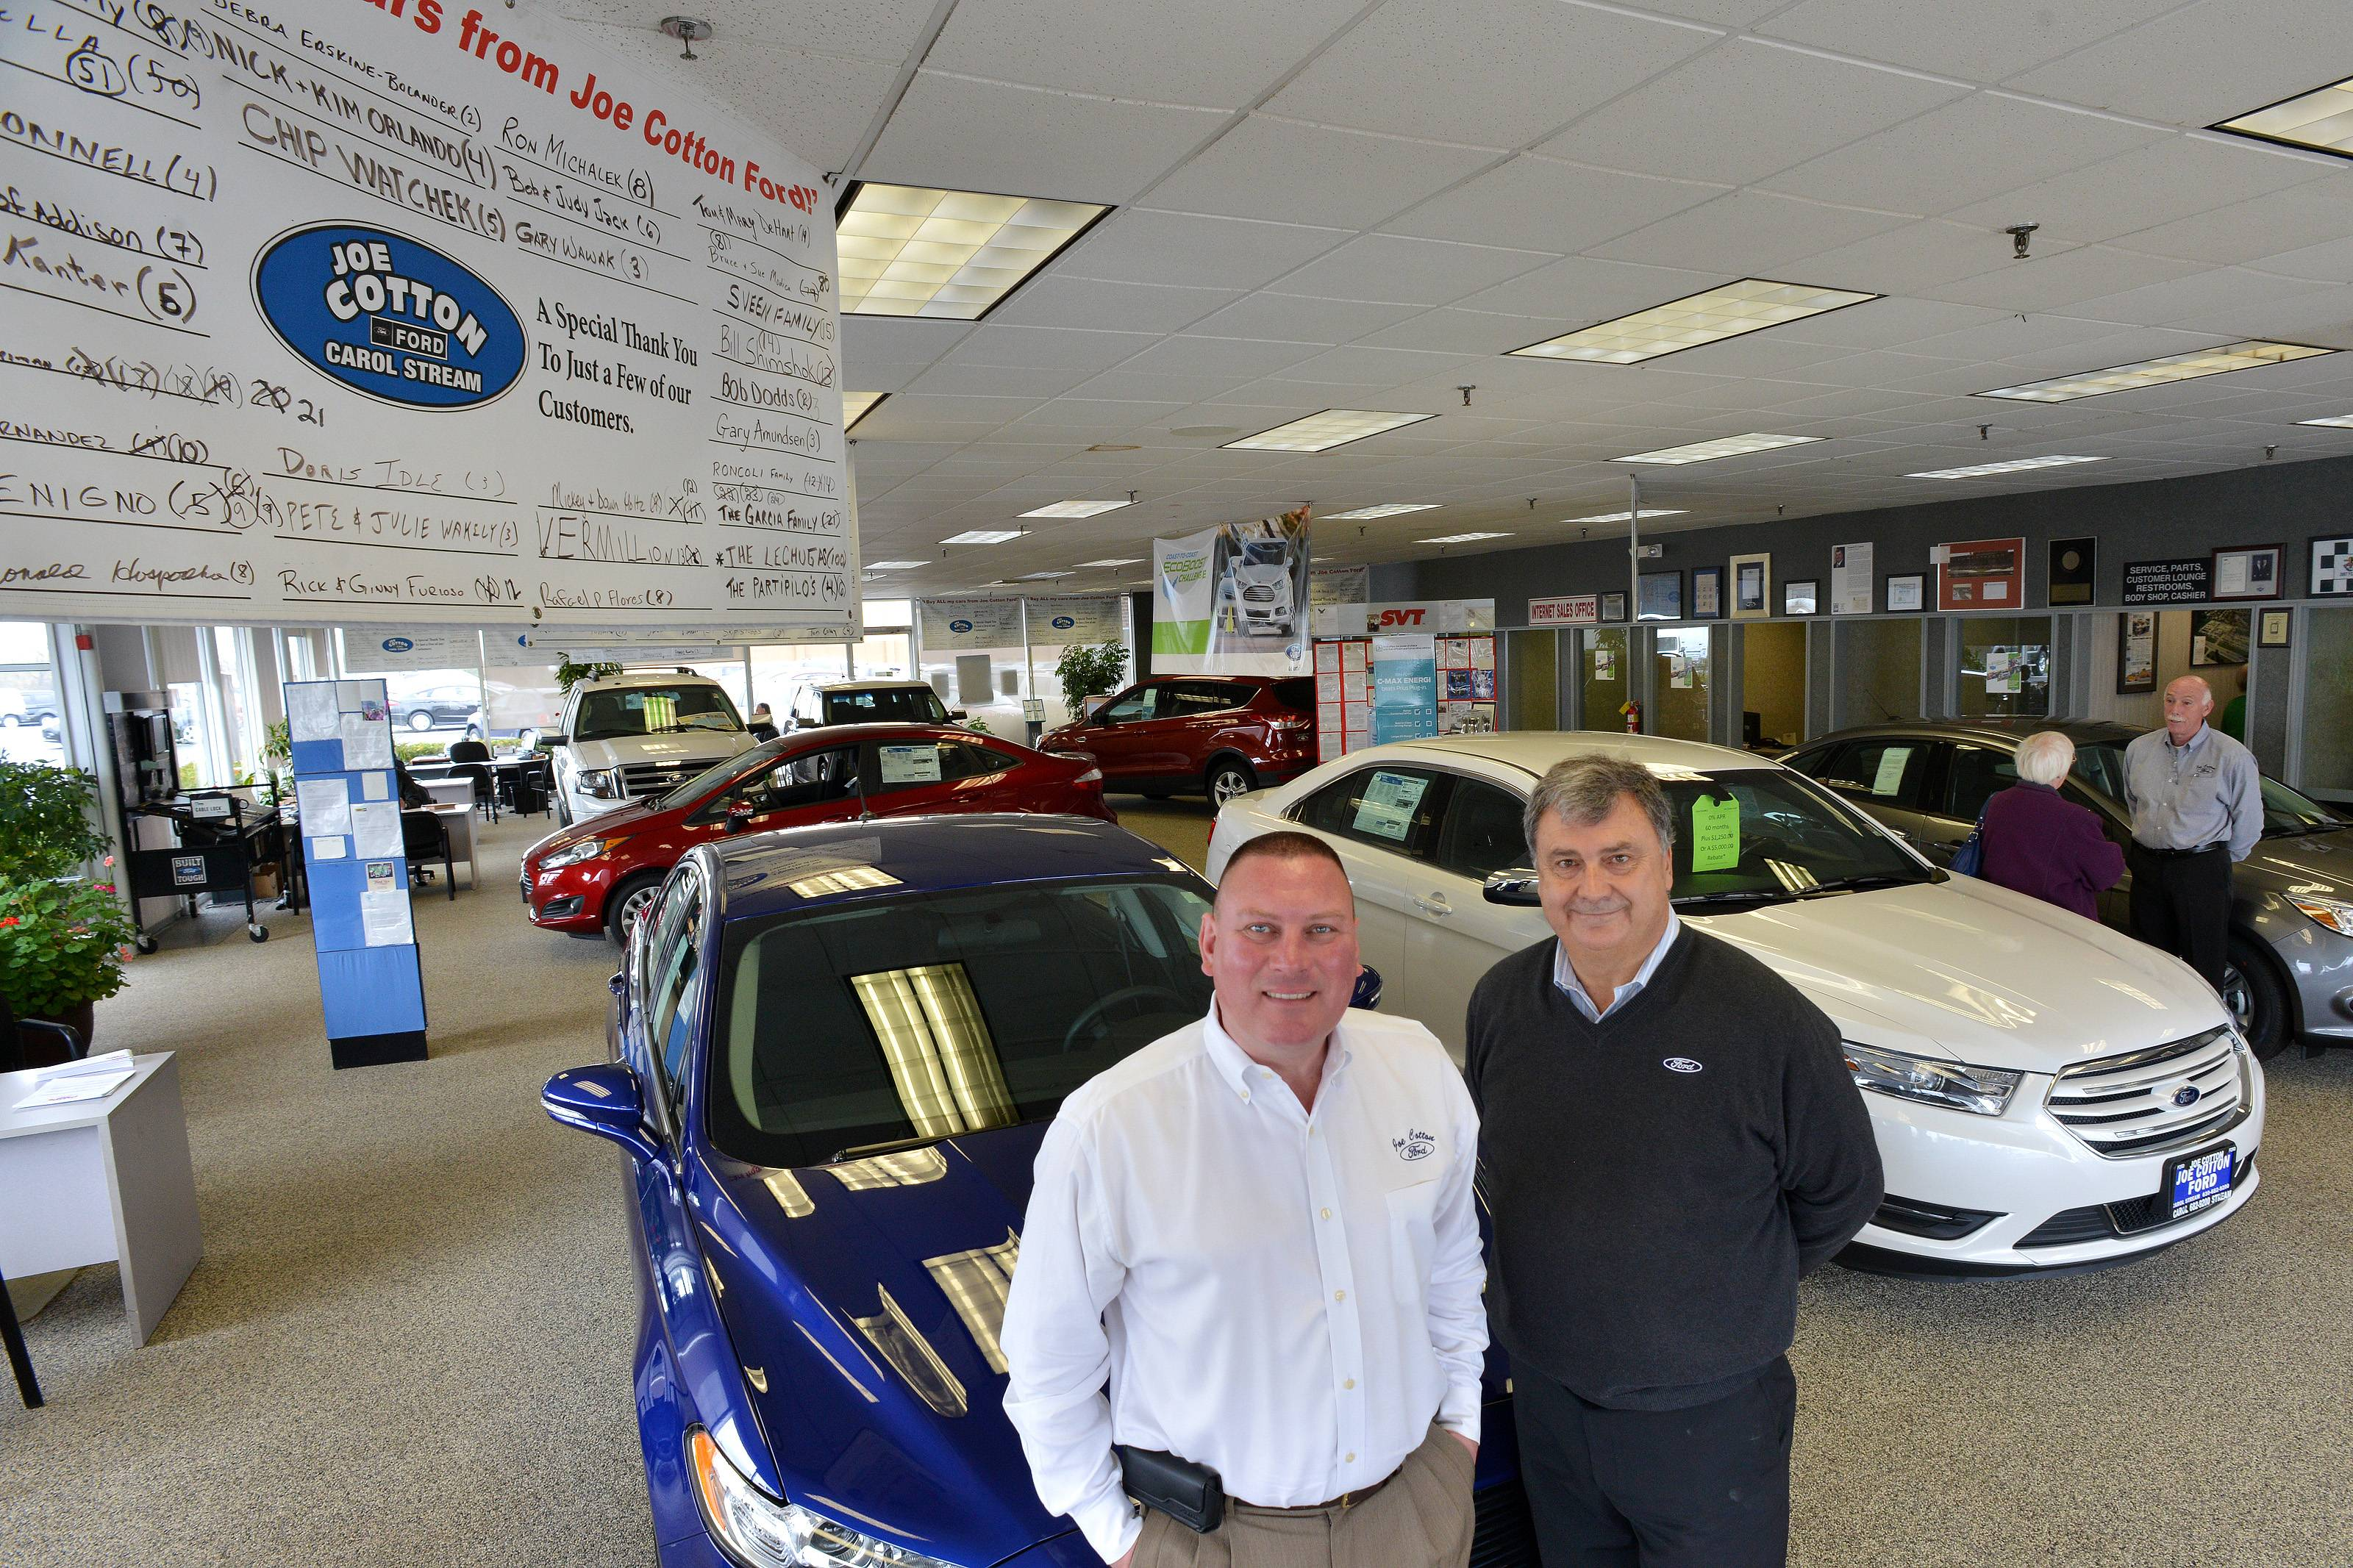 Paul Cotton, right, dealer principle of  Joe Cotton Ford in Carol Stream, works on the showroom floor with Tracy Conn, left, vice president and general manager of the dealership.